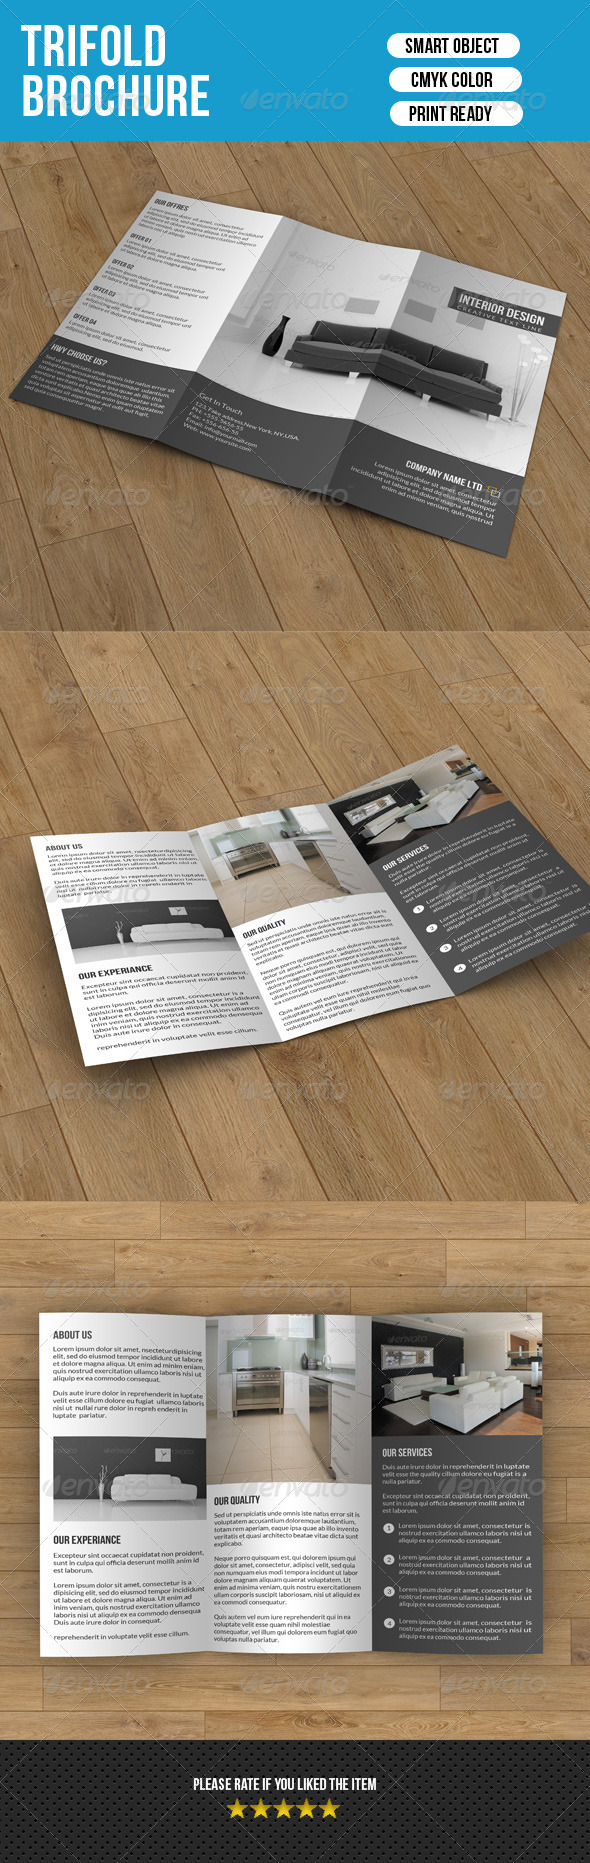 Minimal Trifold-Interior Design - Corporate Brochures